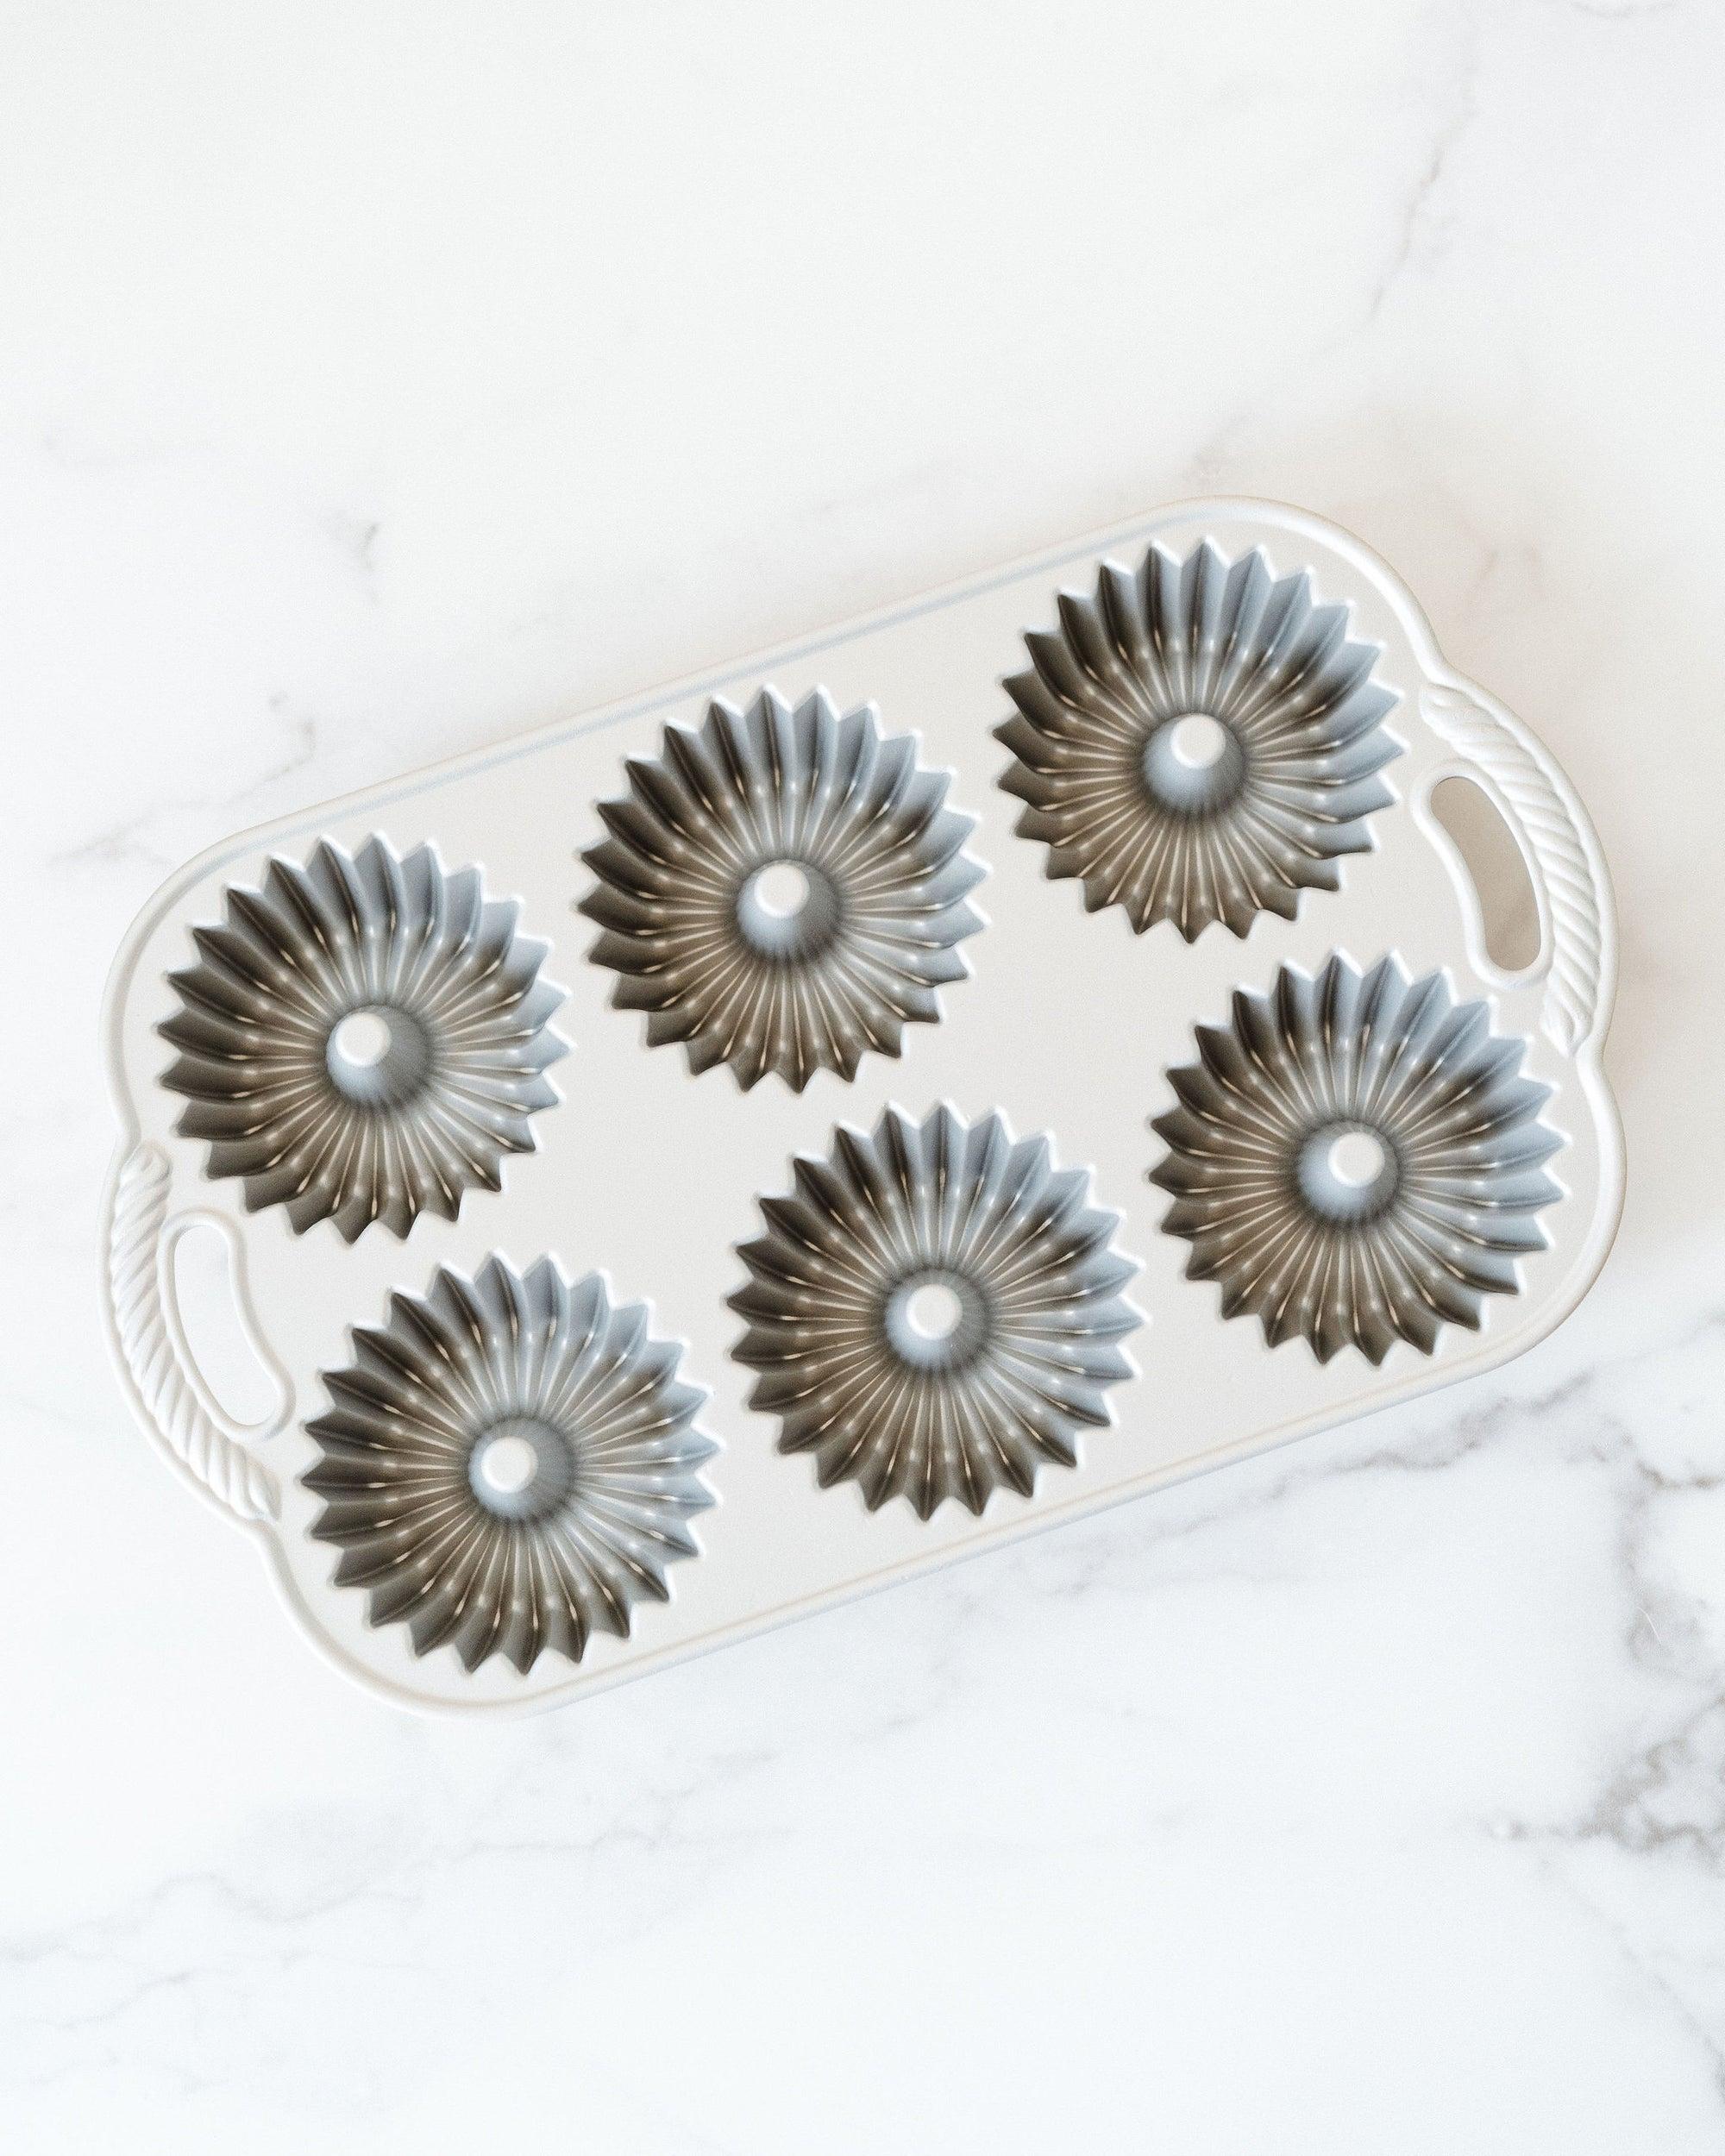 Brilliance Cakelets